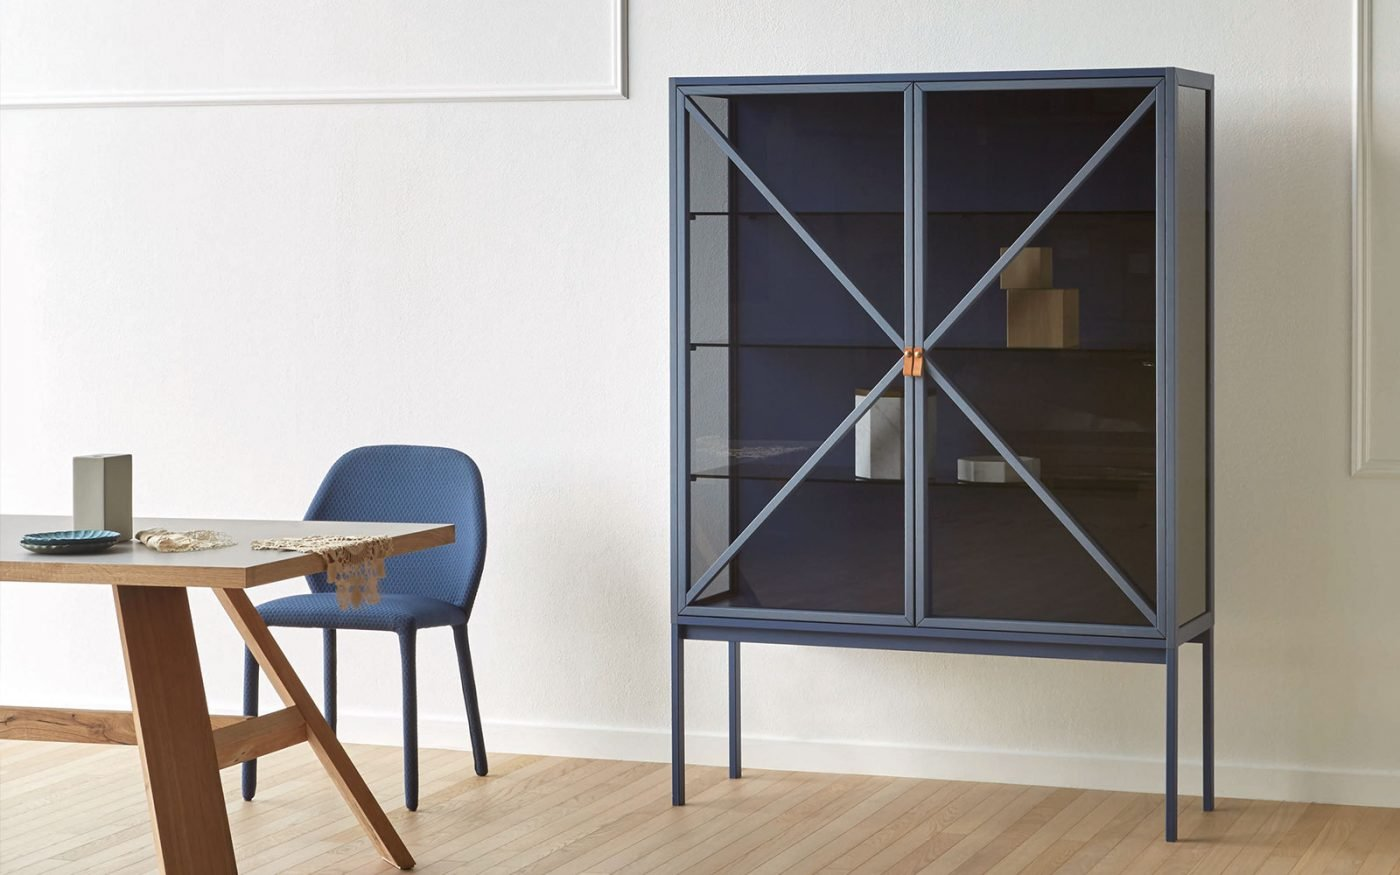 kramer-sideboard-glass-doors-blue-miniforms-2